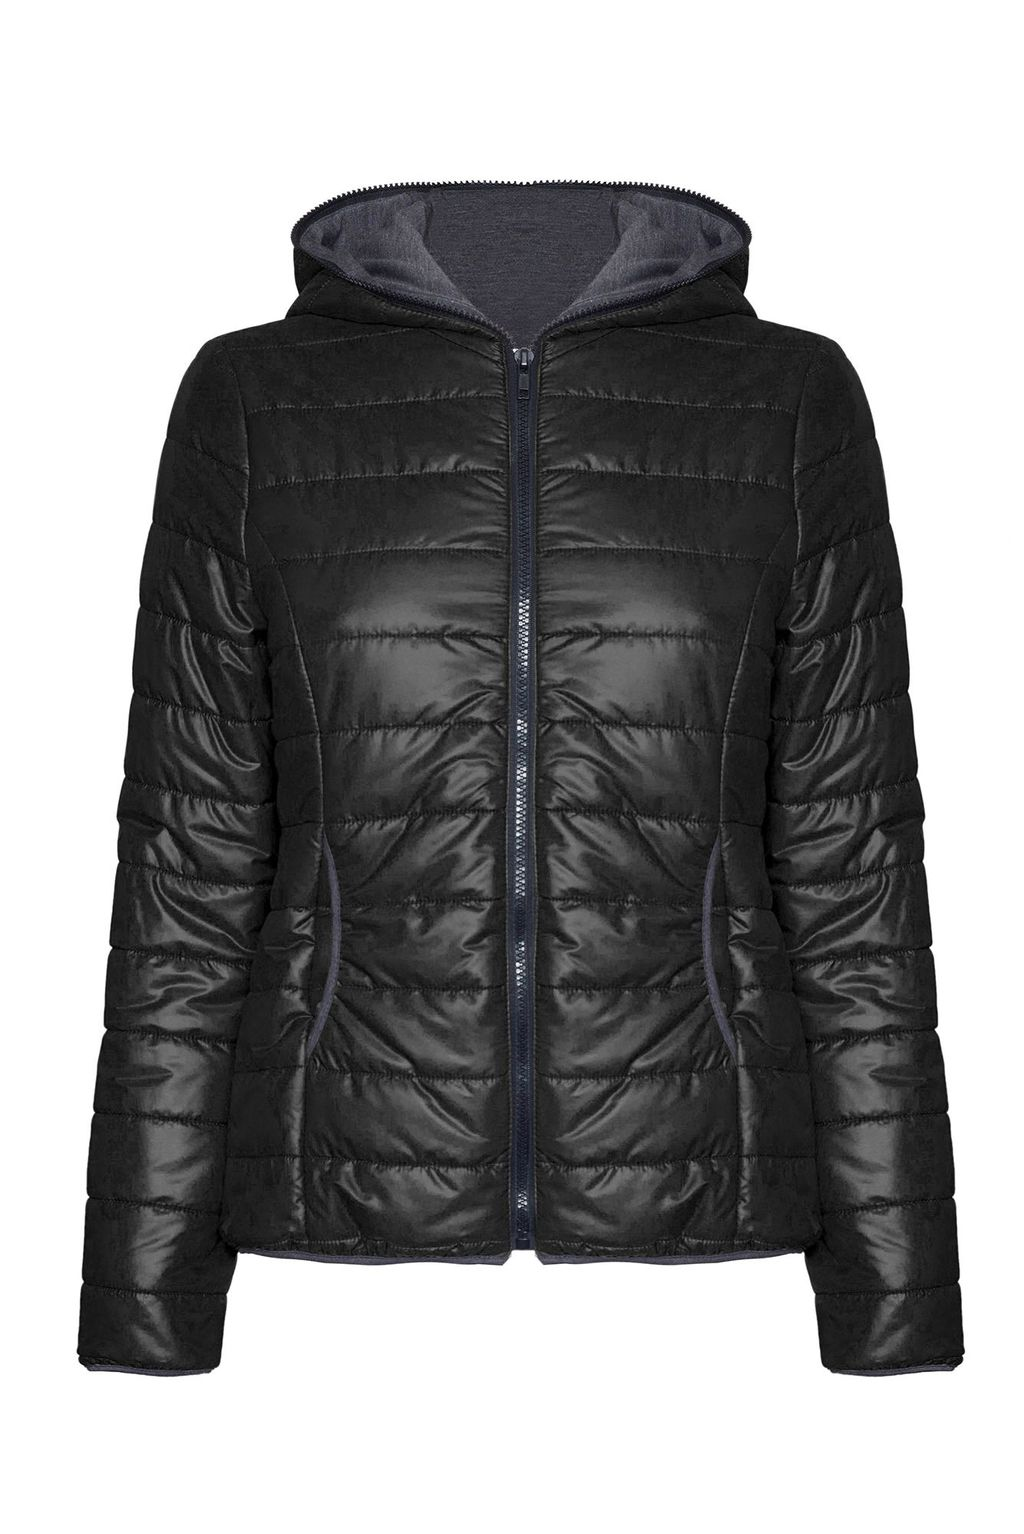 Short Puffer Jacket, Black - pattern: plain; length: standard; collar: high neck; fit: slim fit; predominant colour: black; occasions: casual; fibres: polyester/polyamide - 100%; sleeve length: long sleeve; sleeve style: standard; collar break: high; pattern type: fabric; texture group: woven bulky/heavy; style: puffa; season: a/w 2015; wardrobe: basic